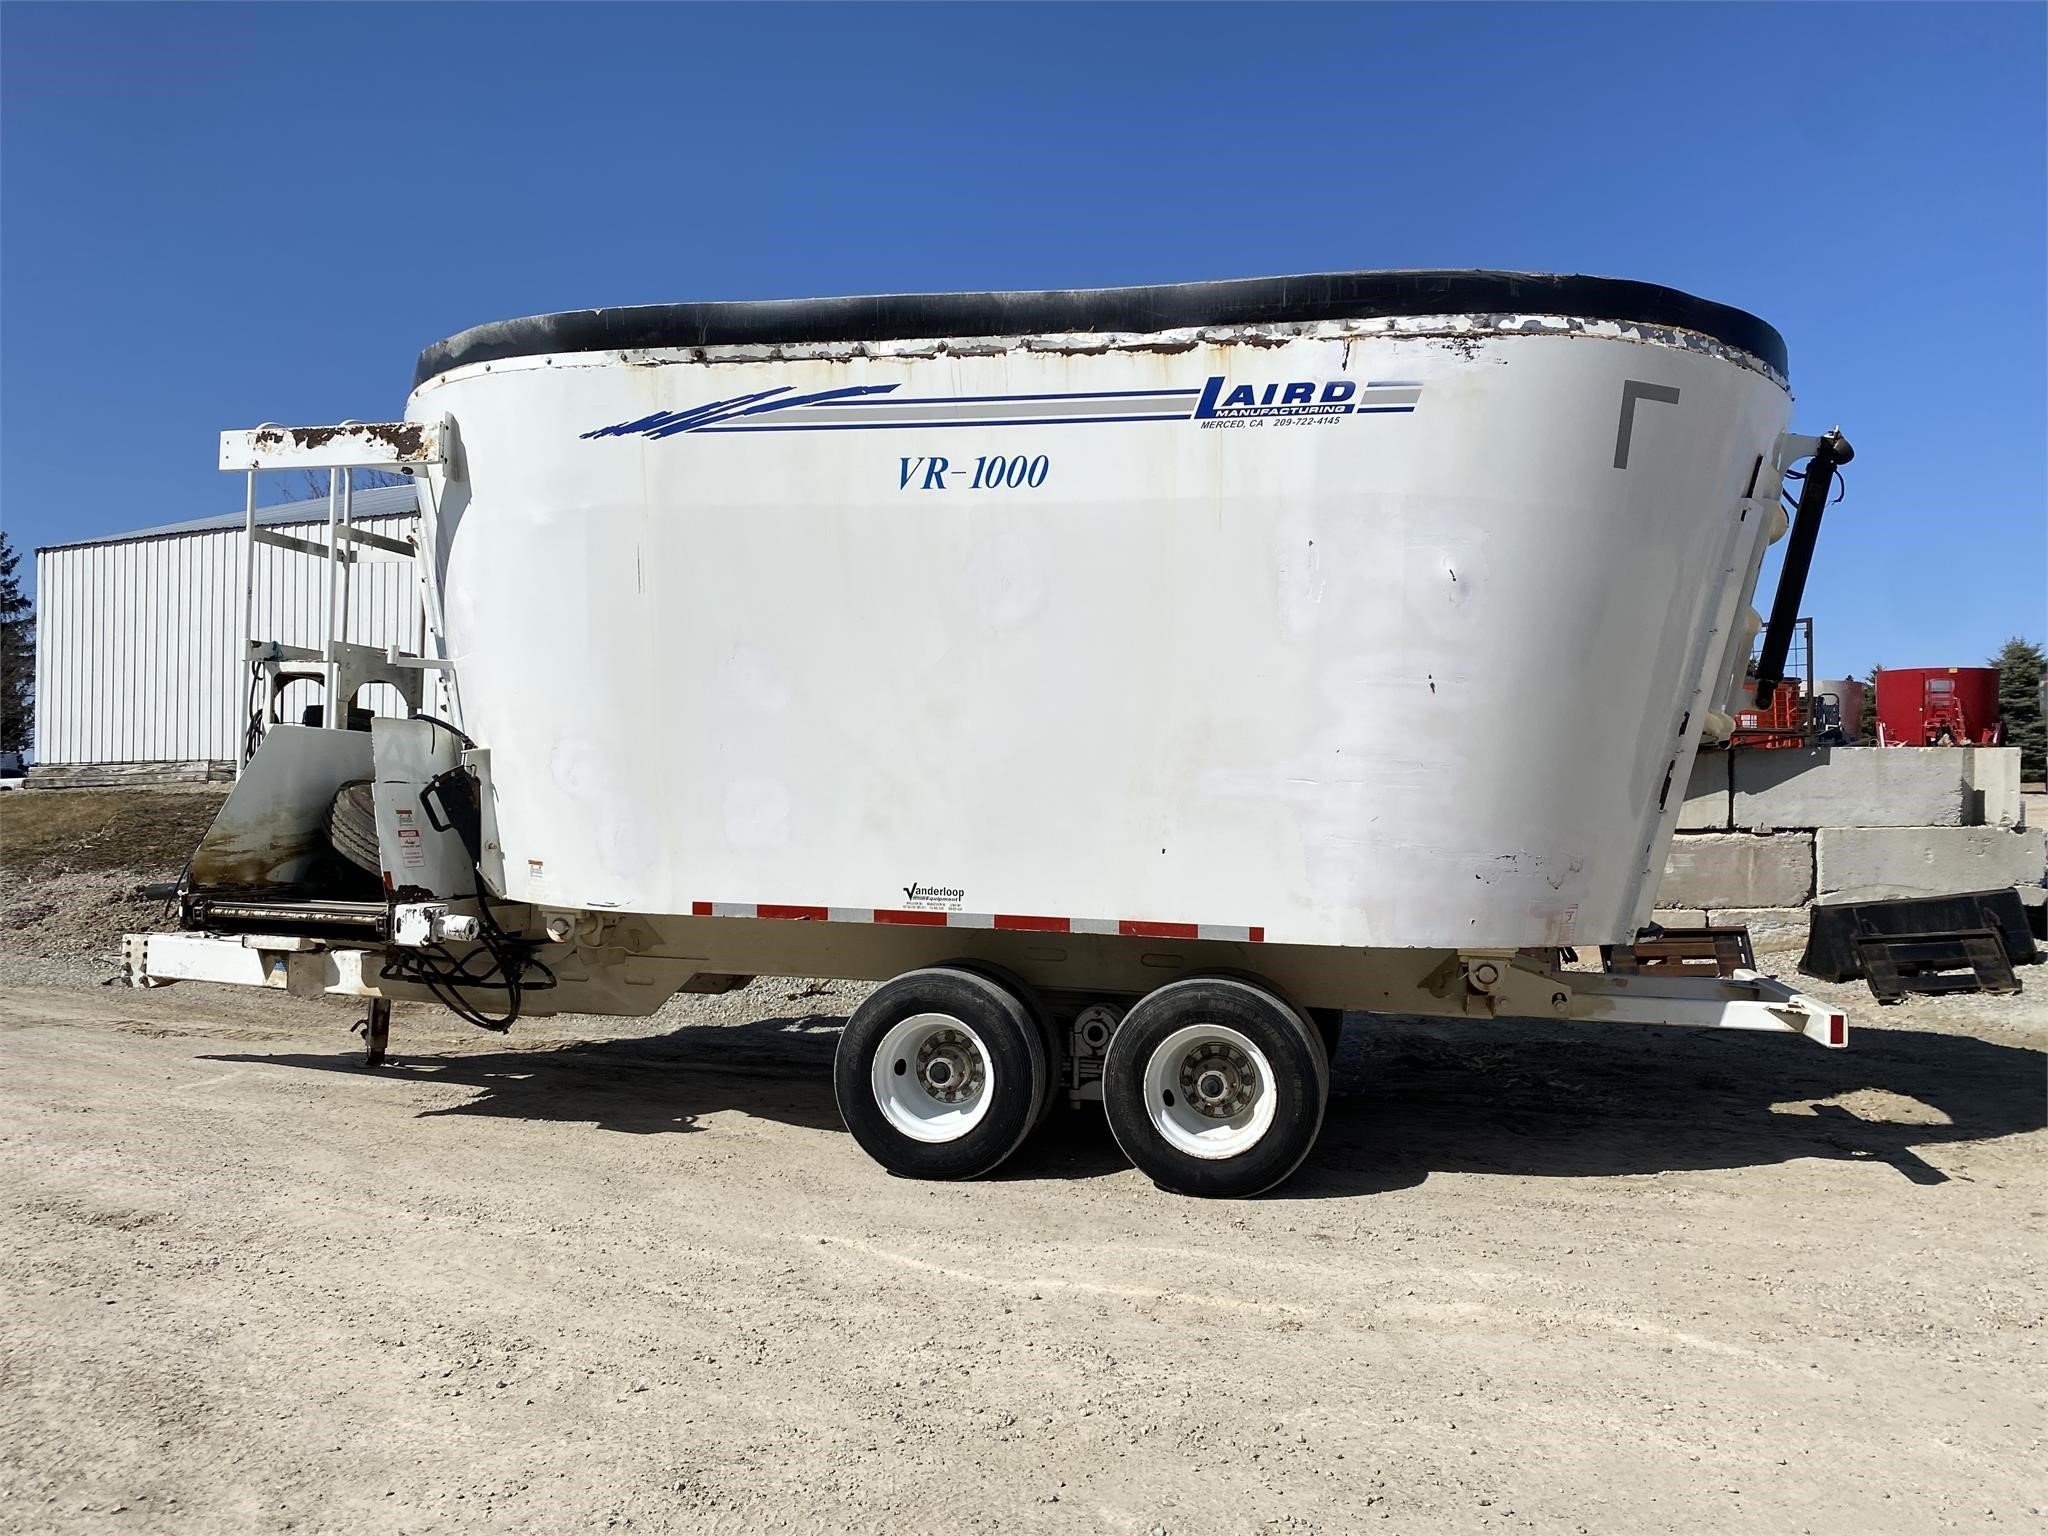 Laird VR1000 Grinders and Mixer